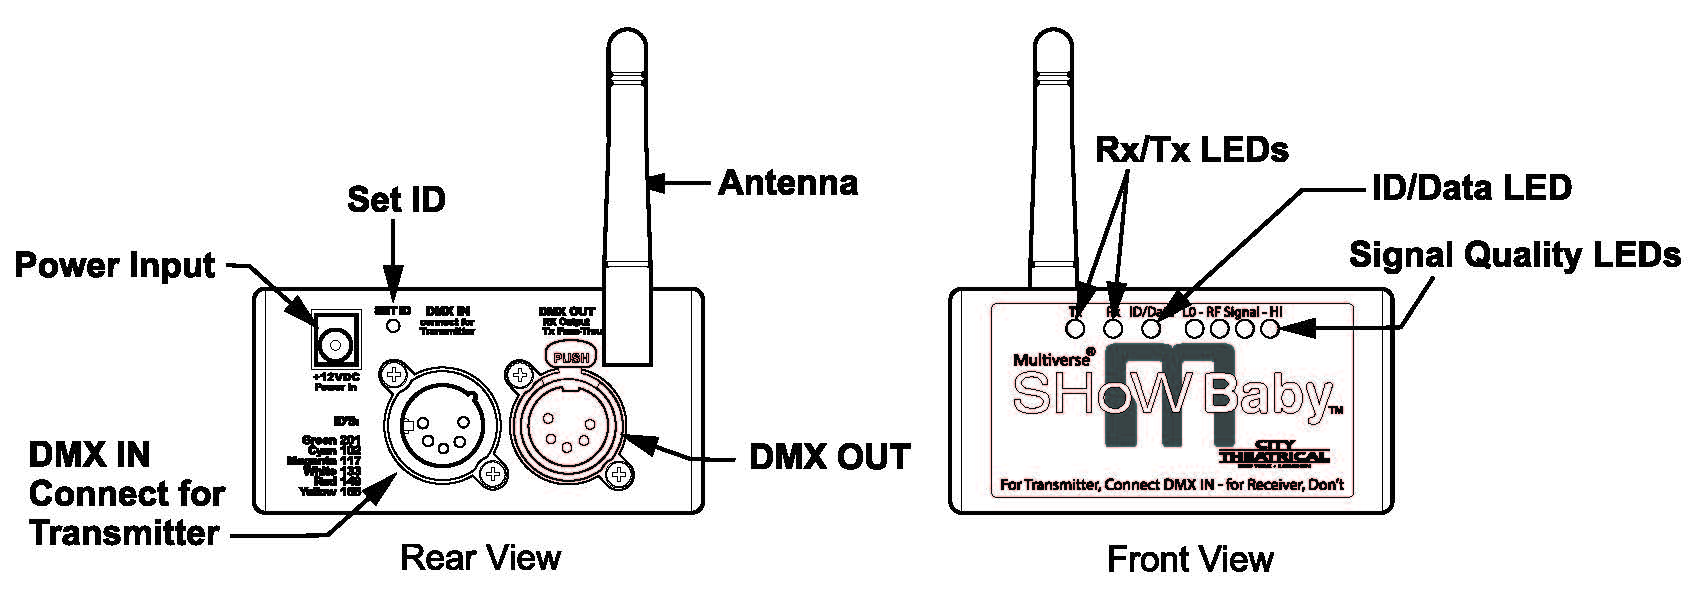 multiverse� show baby� on dmx connectors diagram, dmx wiring touch-and-